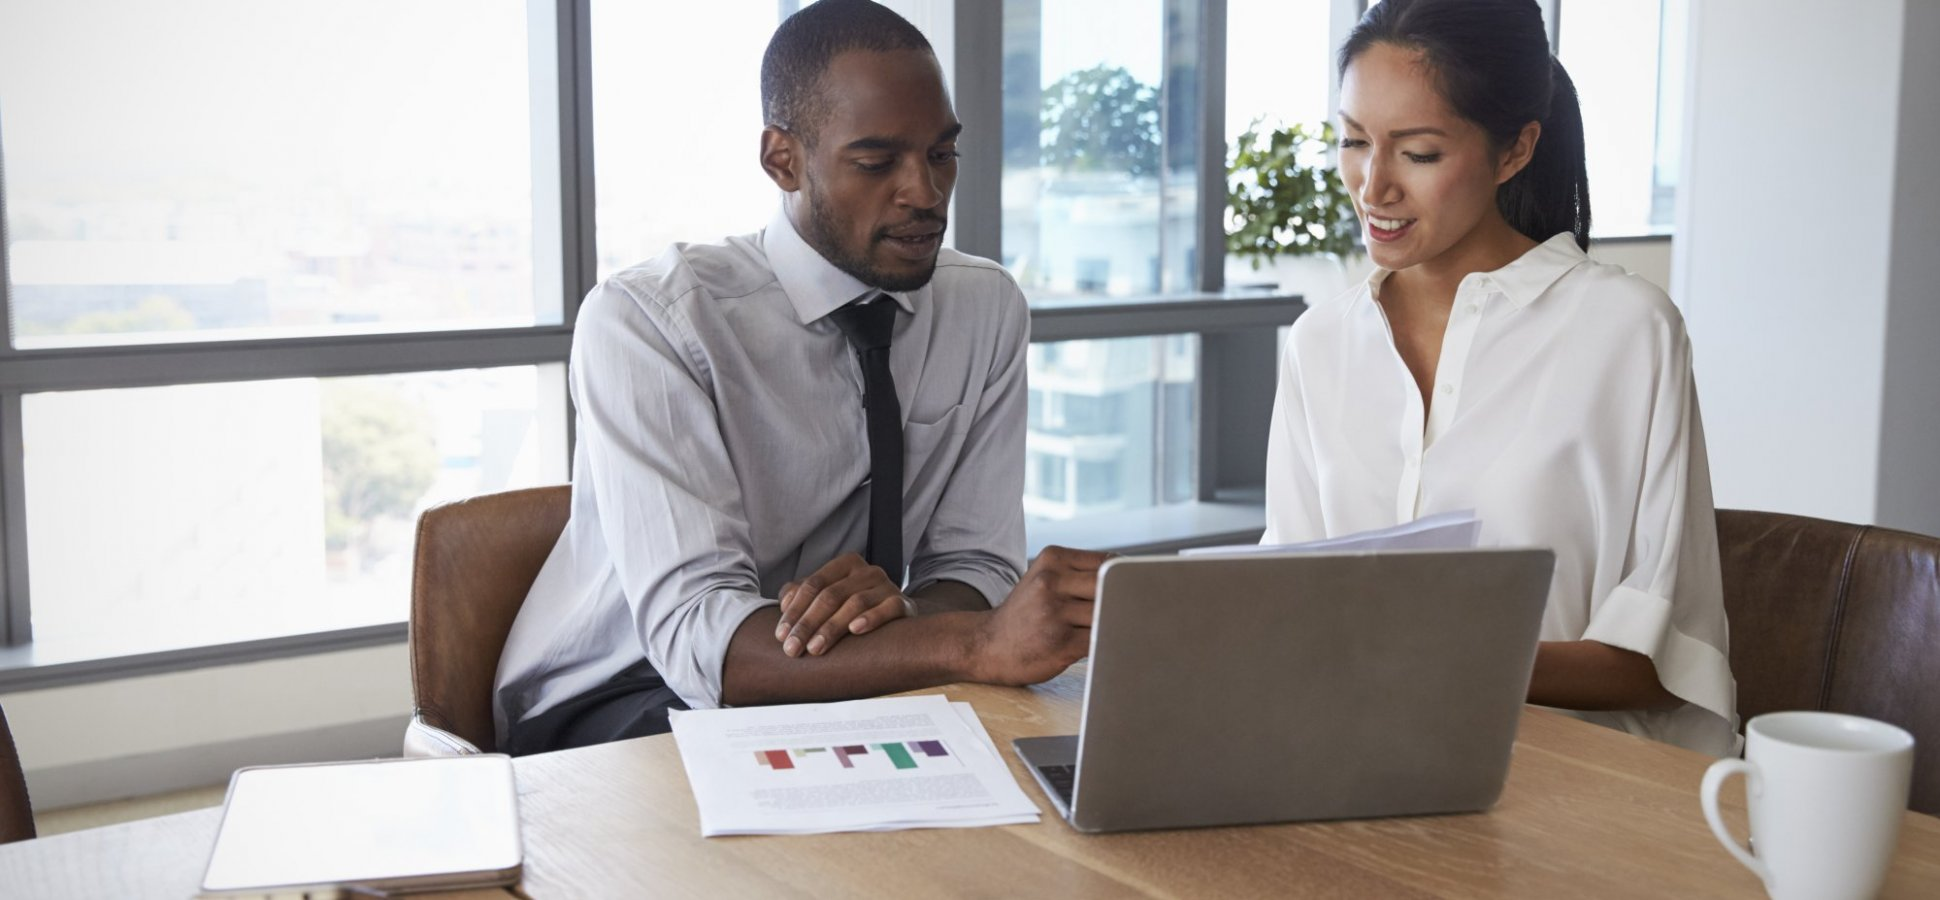 The 6 Qualities Great Mentors Share